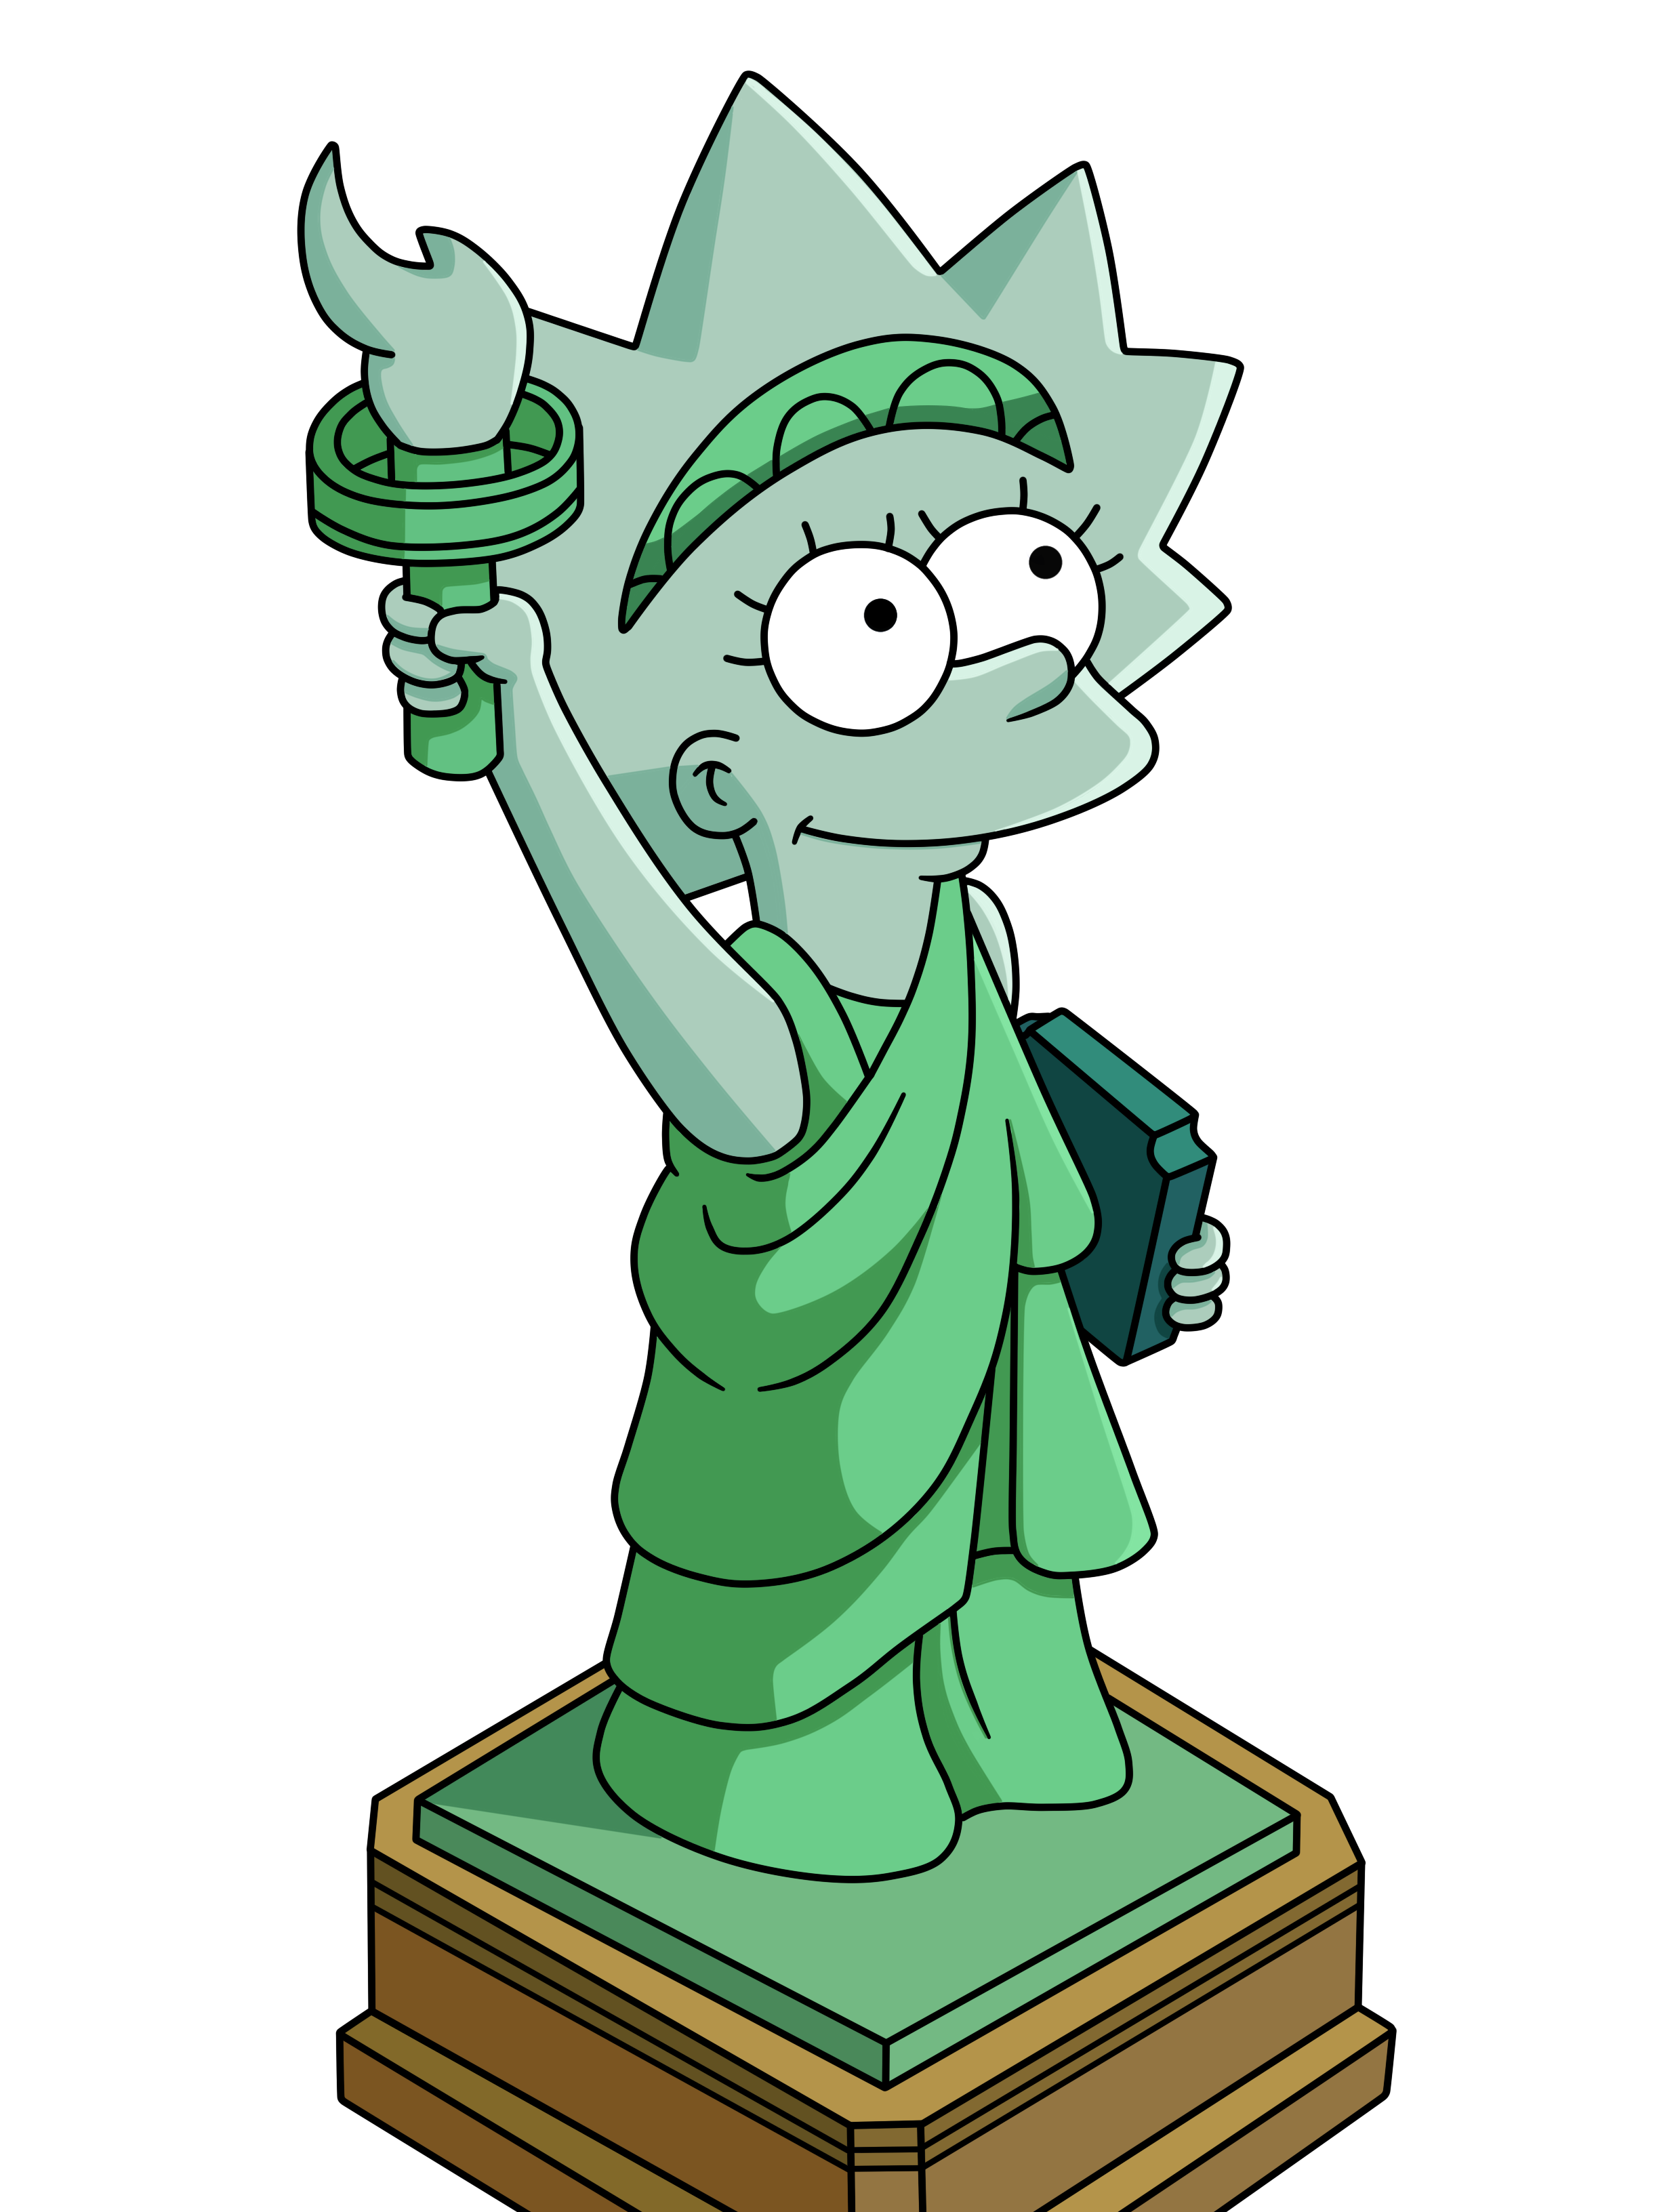 Drawn statue of liberty cartoon Statue Of Of on Lisa